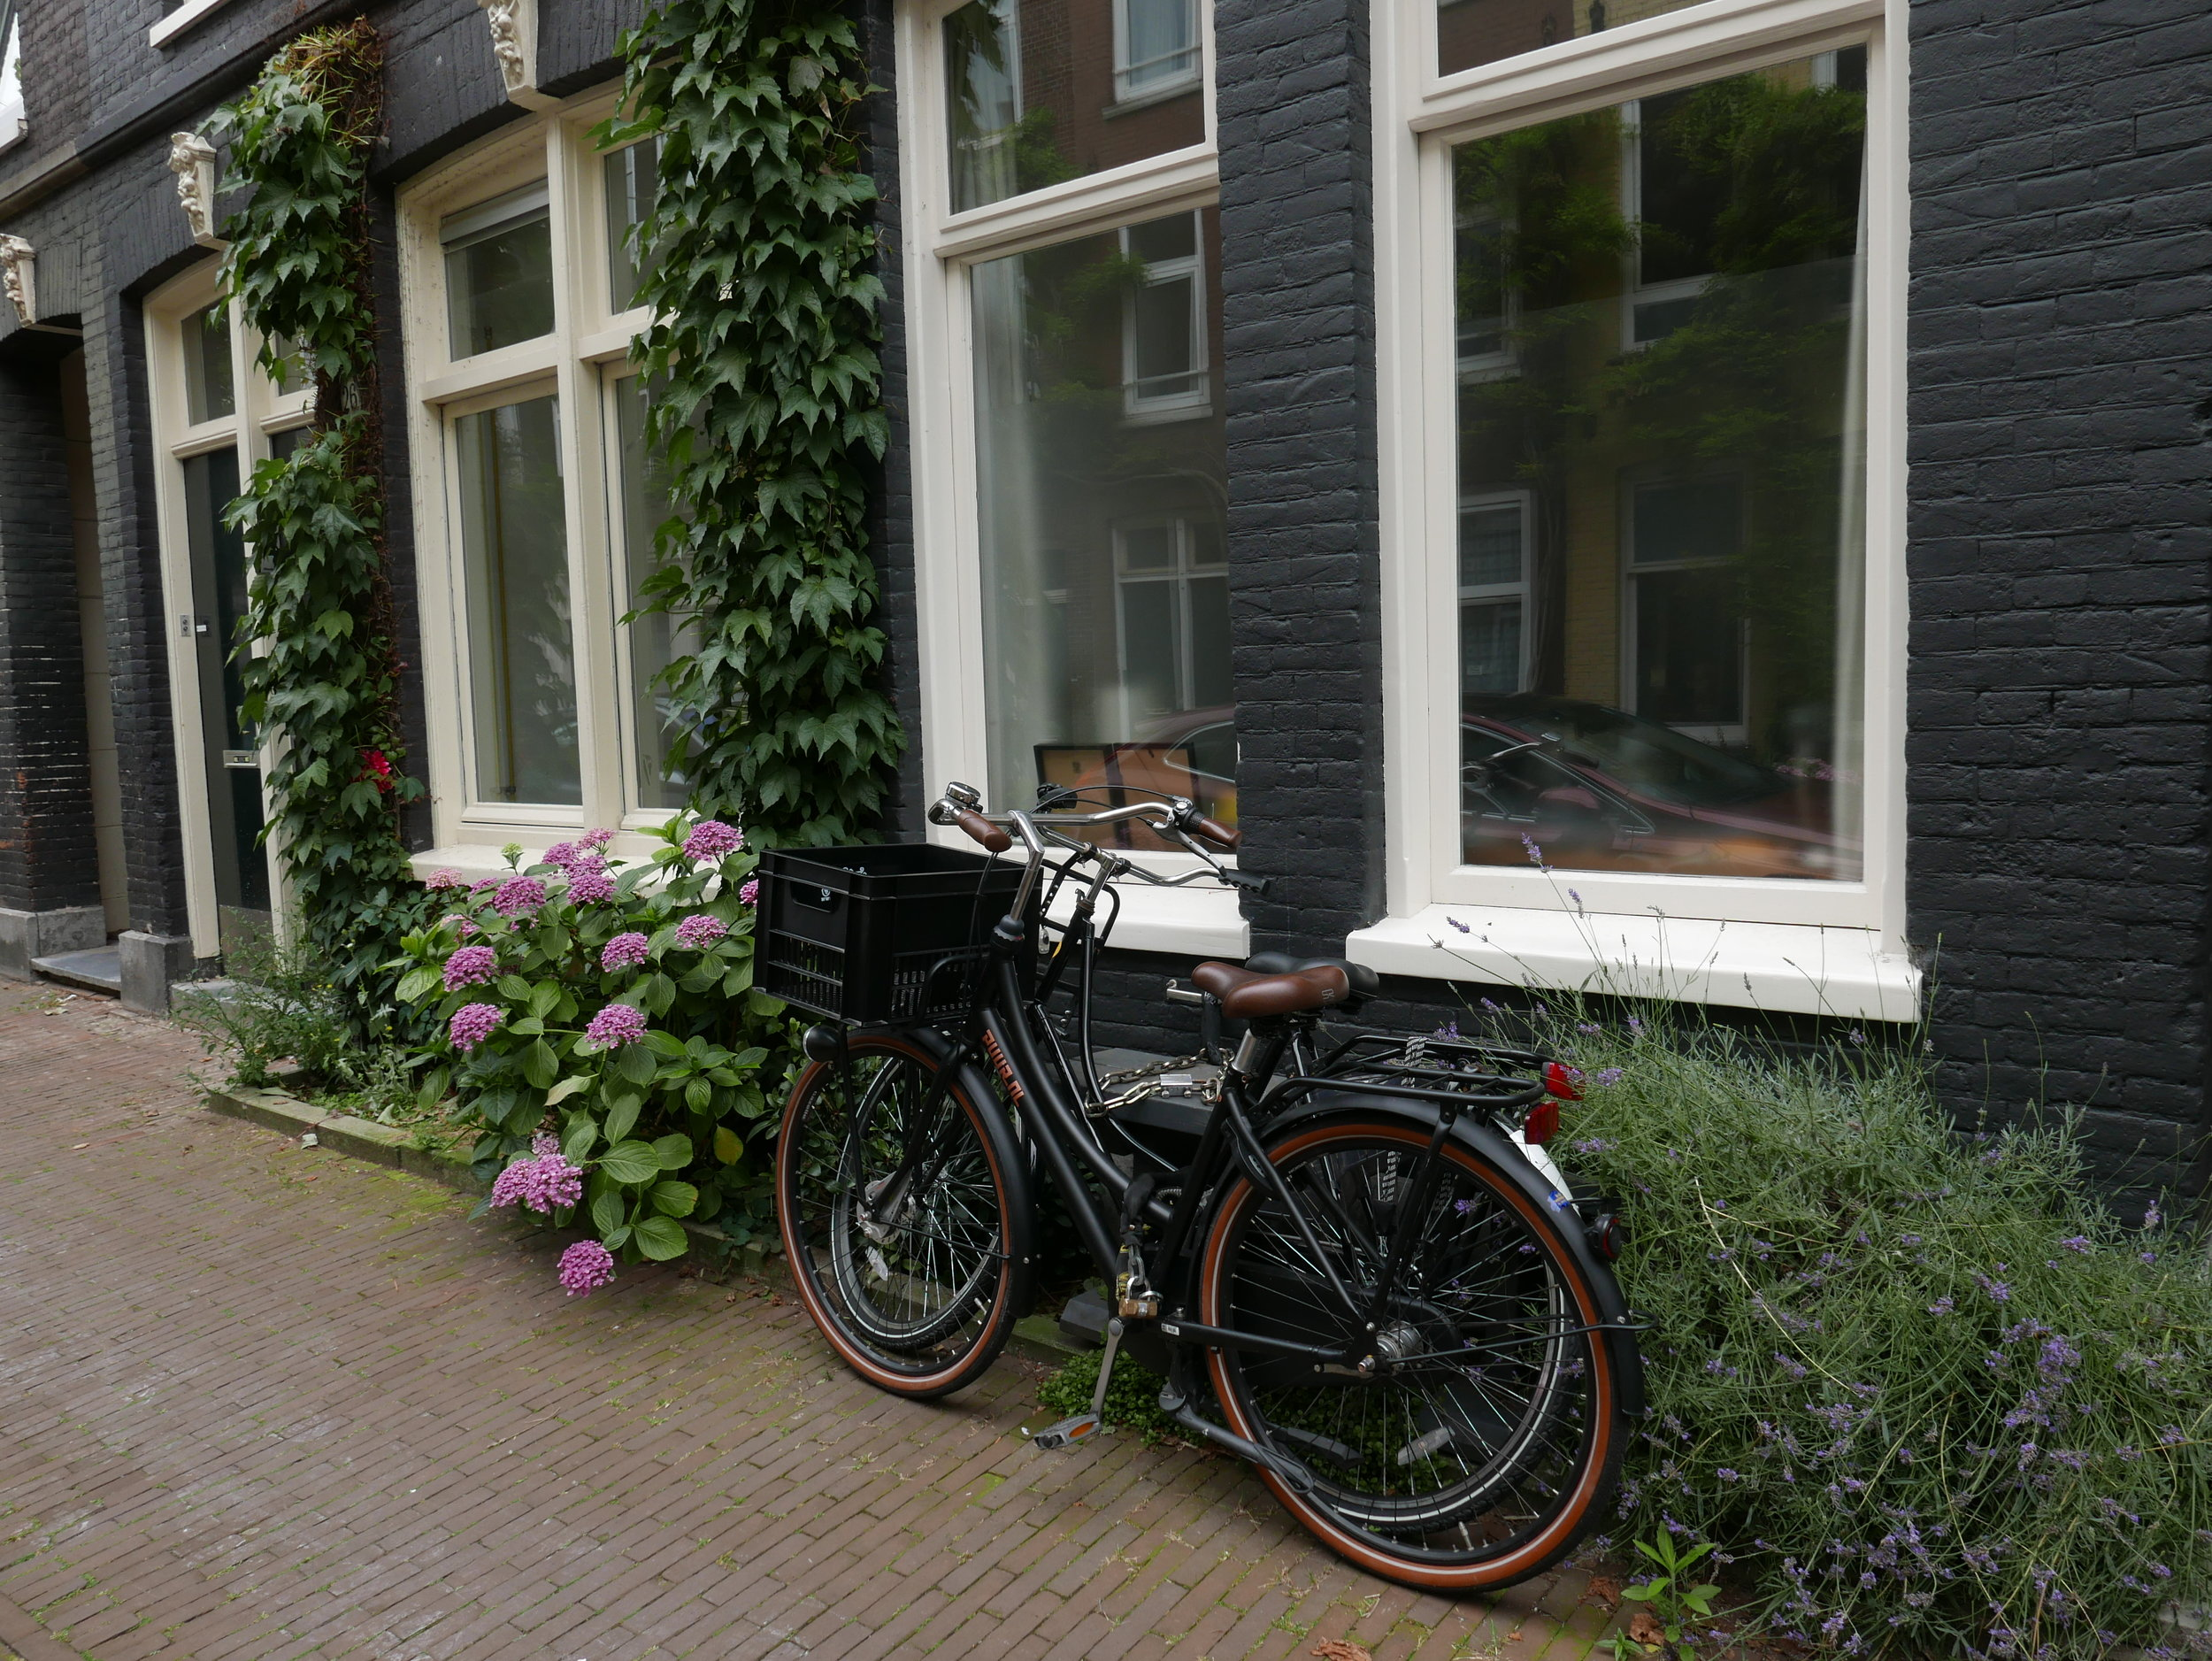 No underground for meetings, just a quick hop on a bike and away we go!